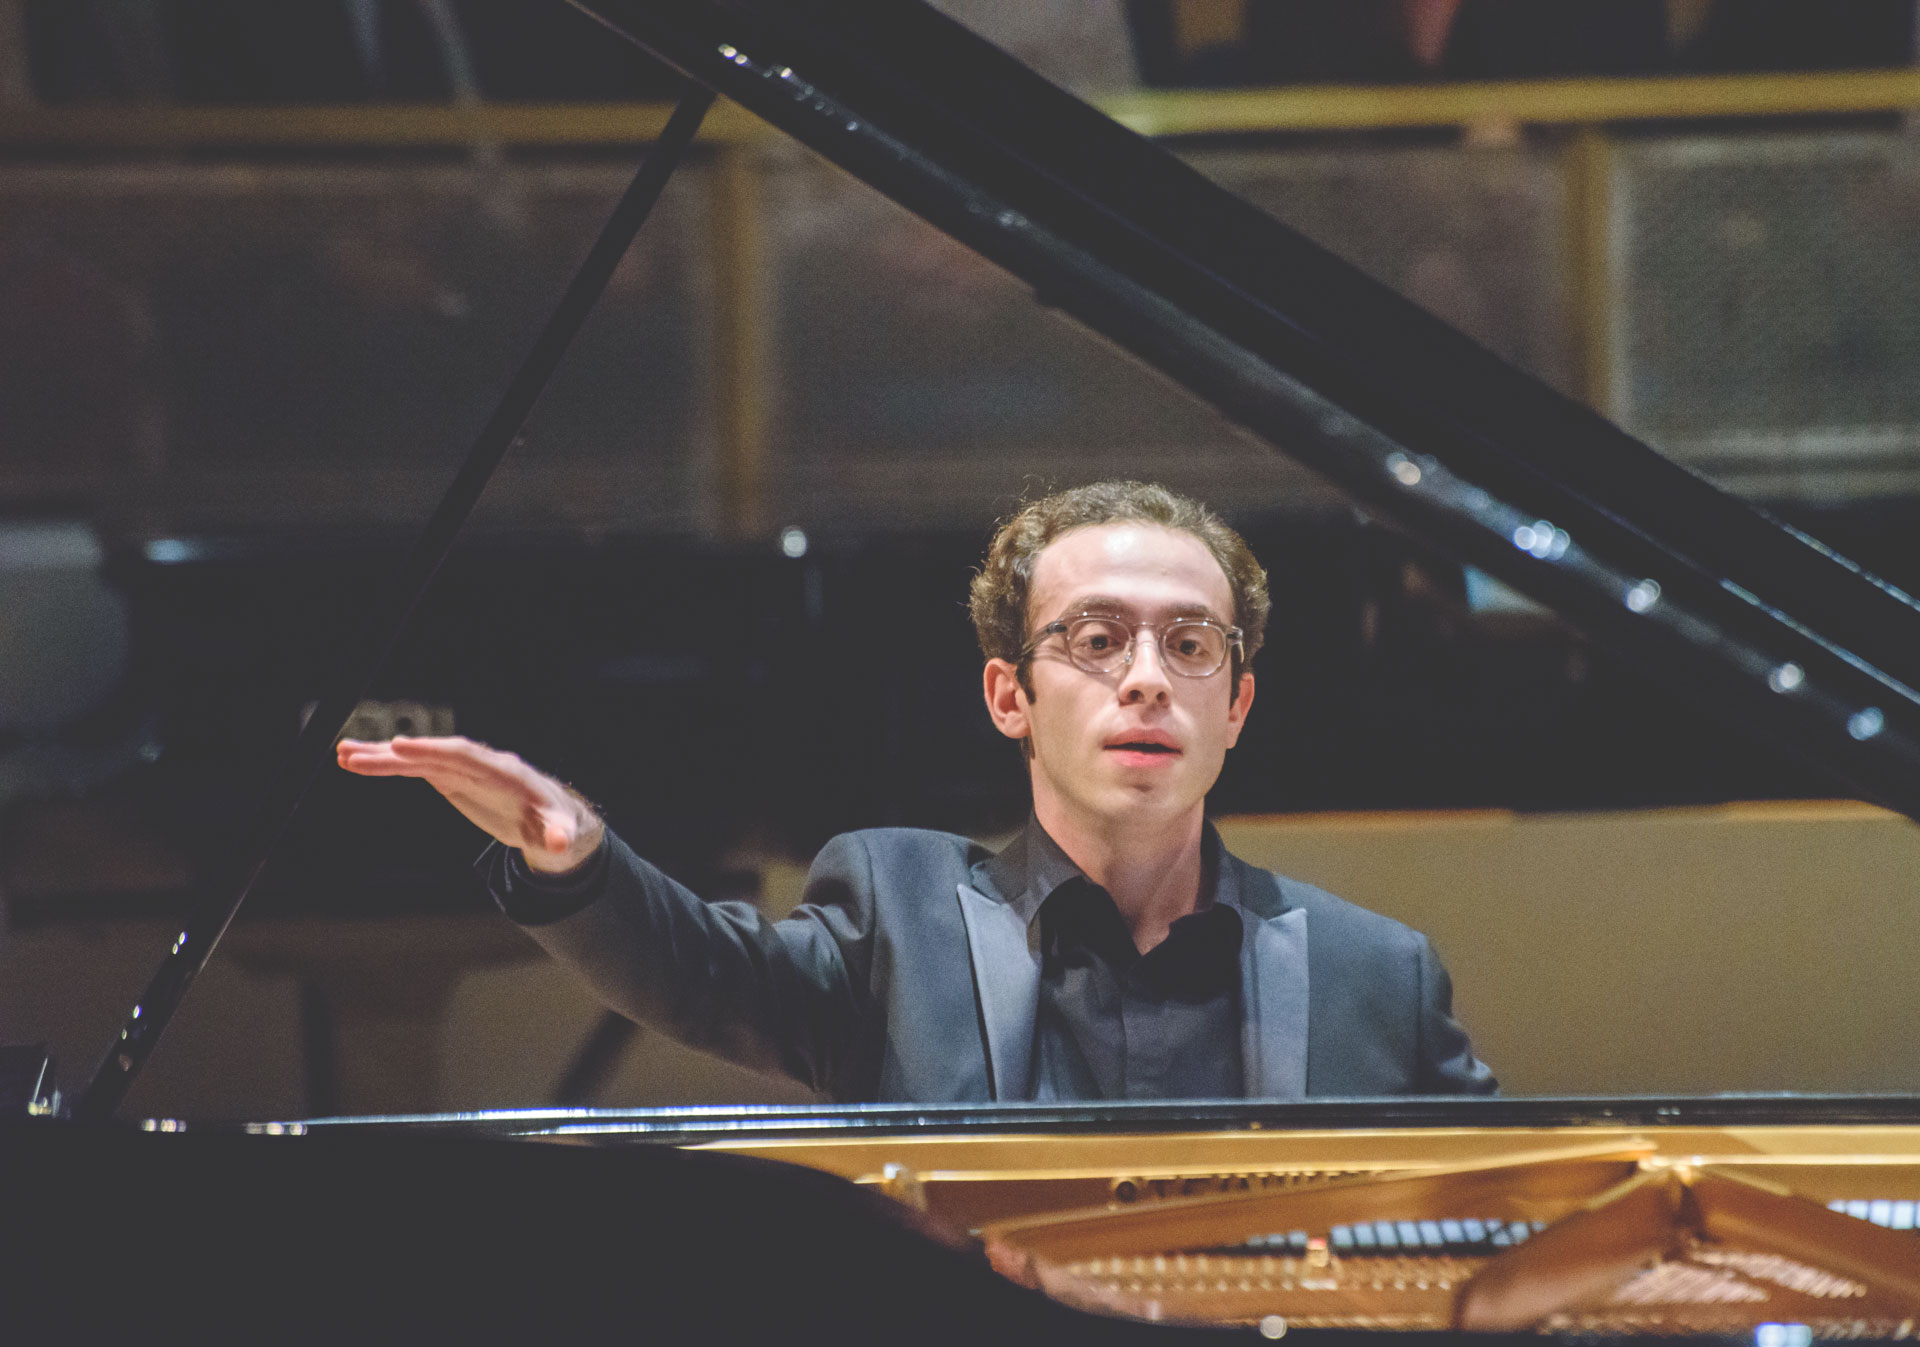 Nicolas Namoradze performs at Honens.